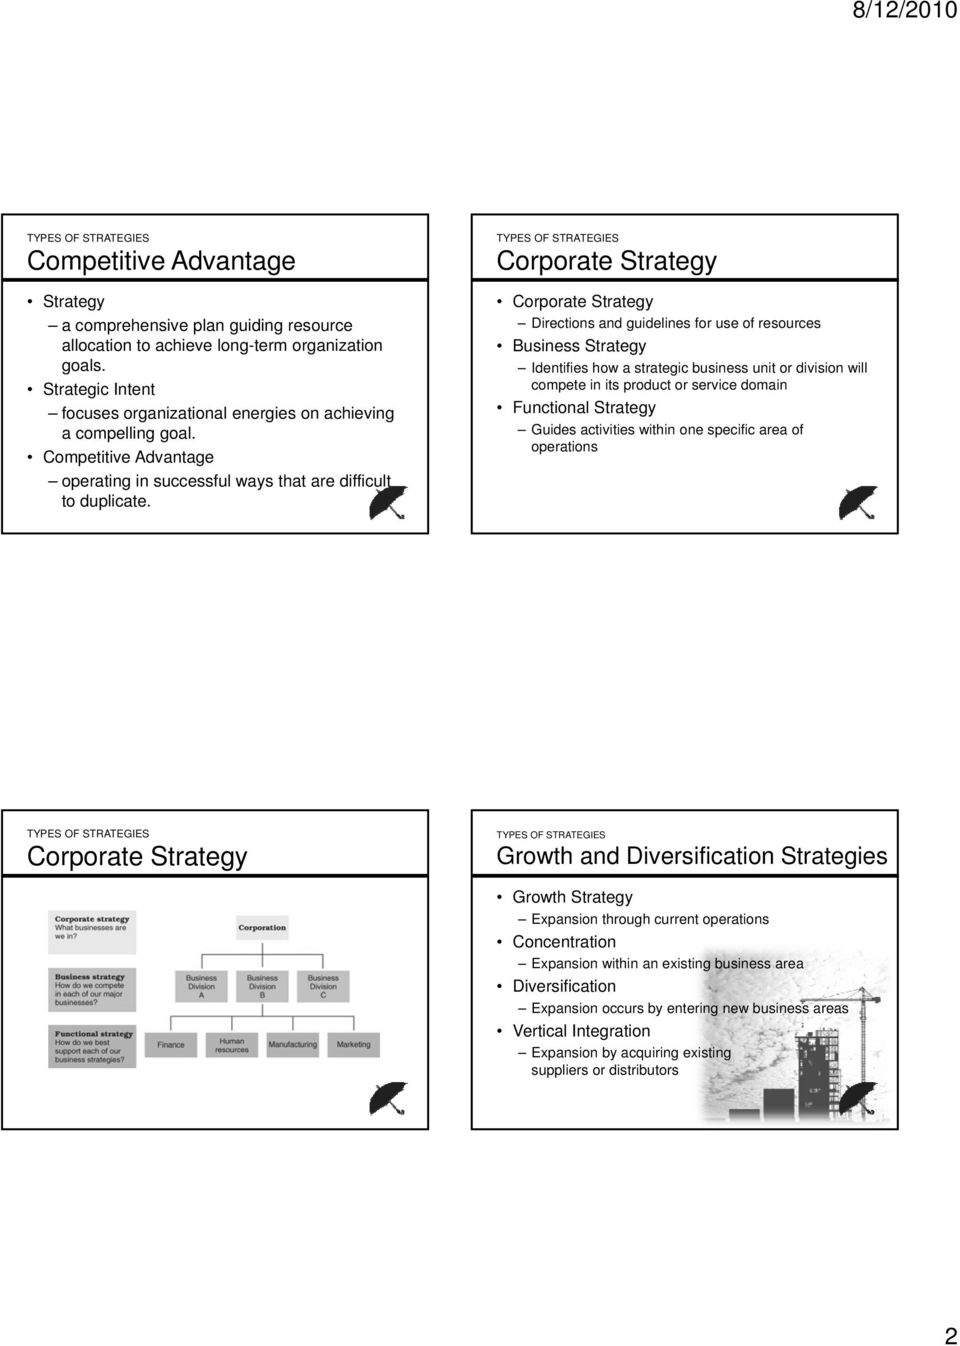 Corporate Strategy Corporate Strategy Directions and guidelines for use of resources Business Strategy Identifies how a strategic business unit or division will compete in its product or service